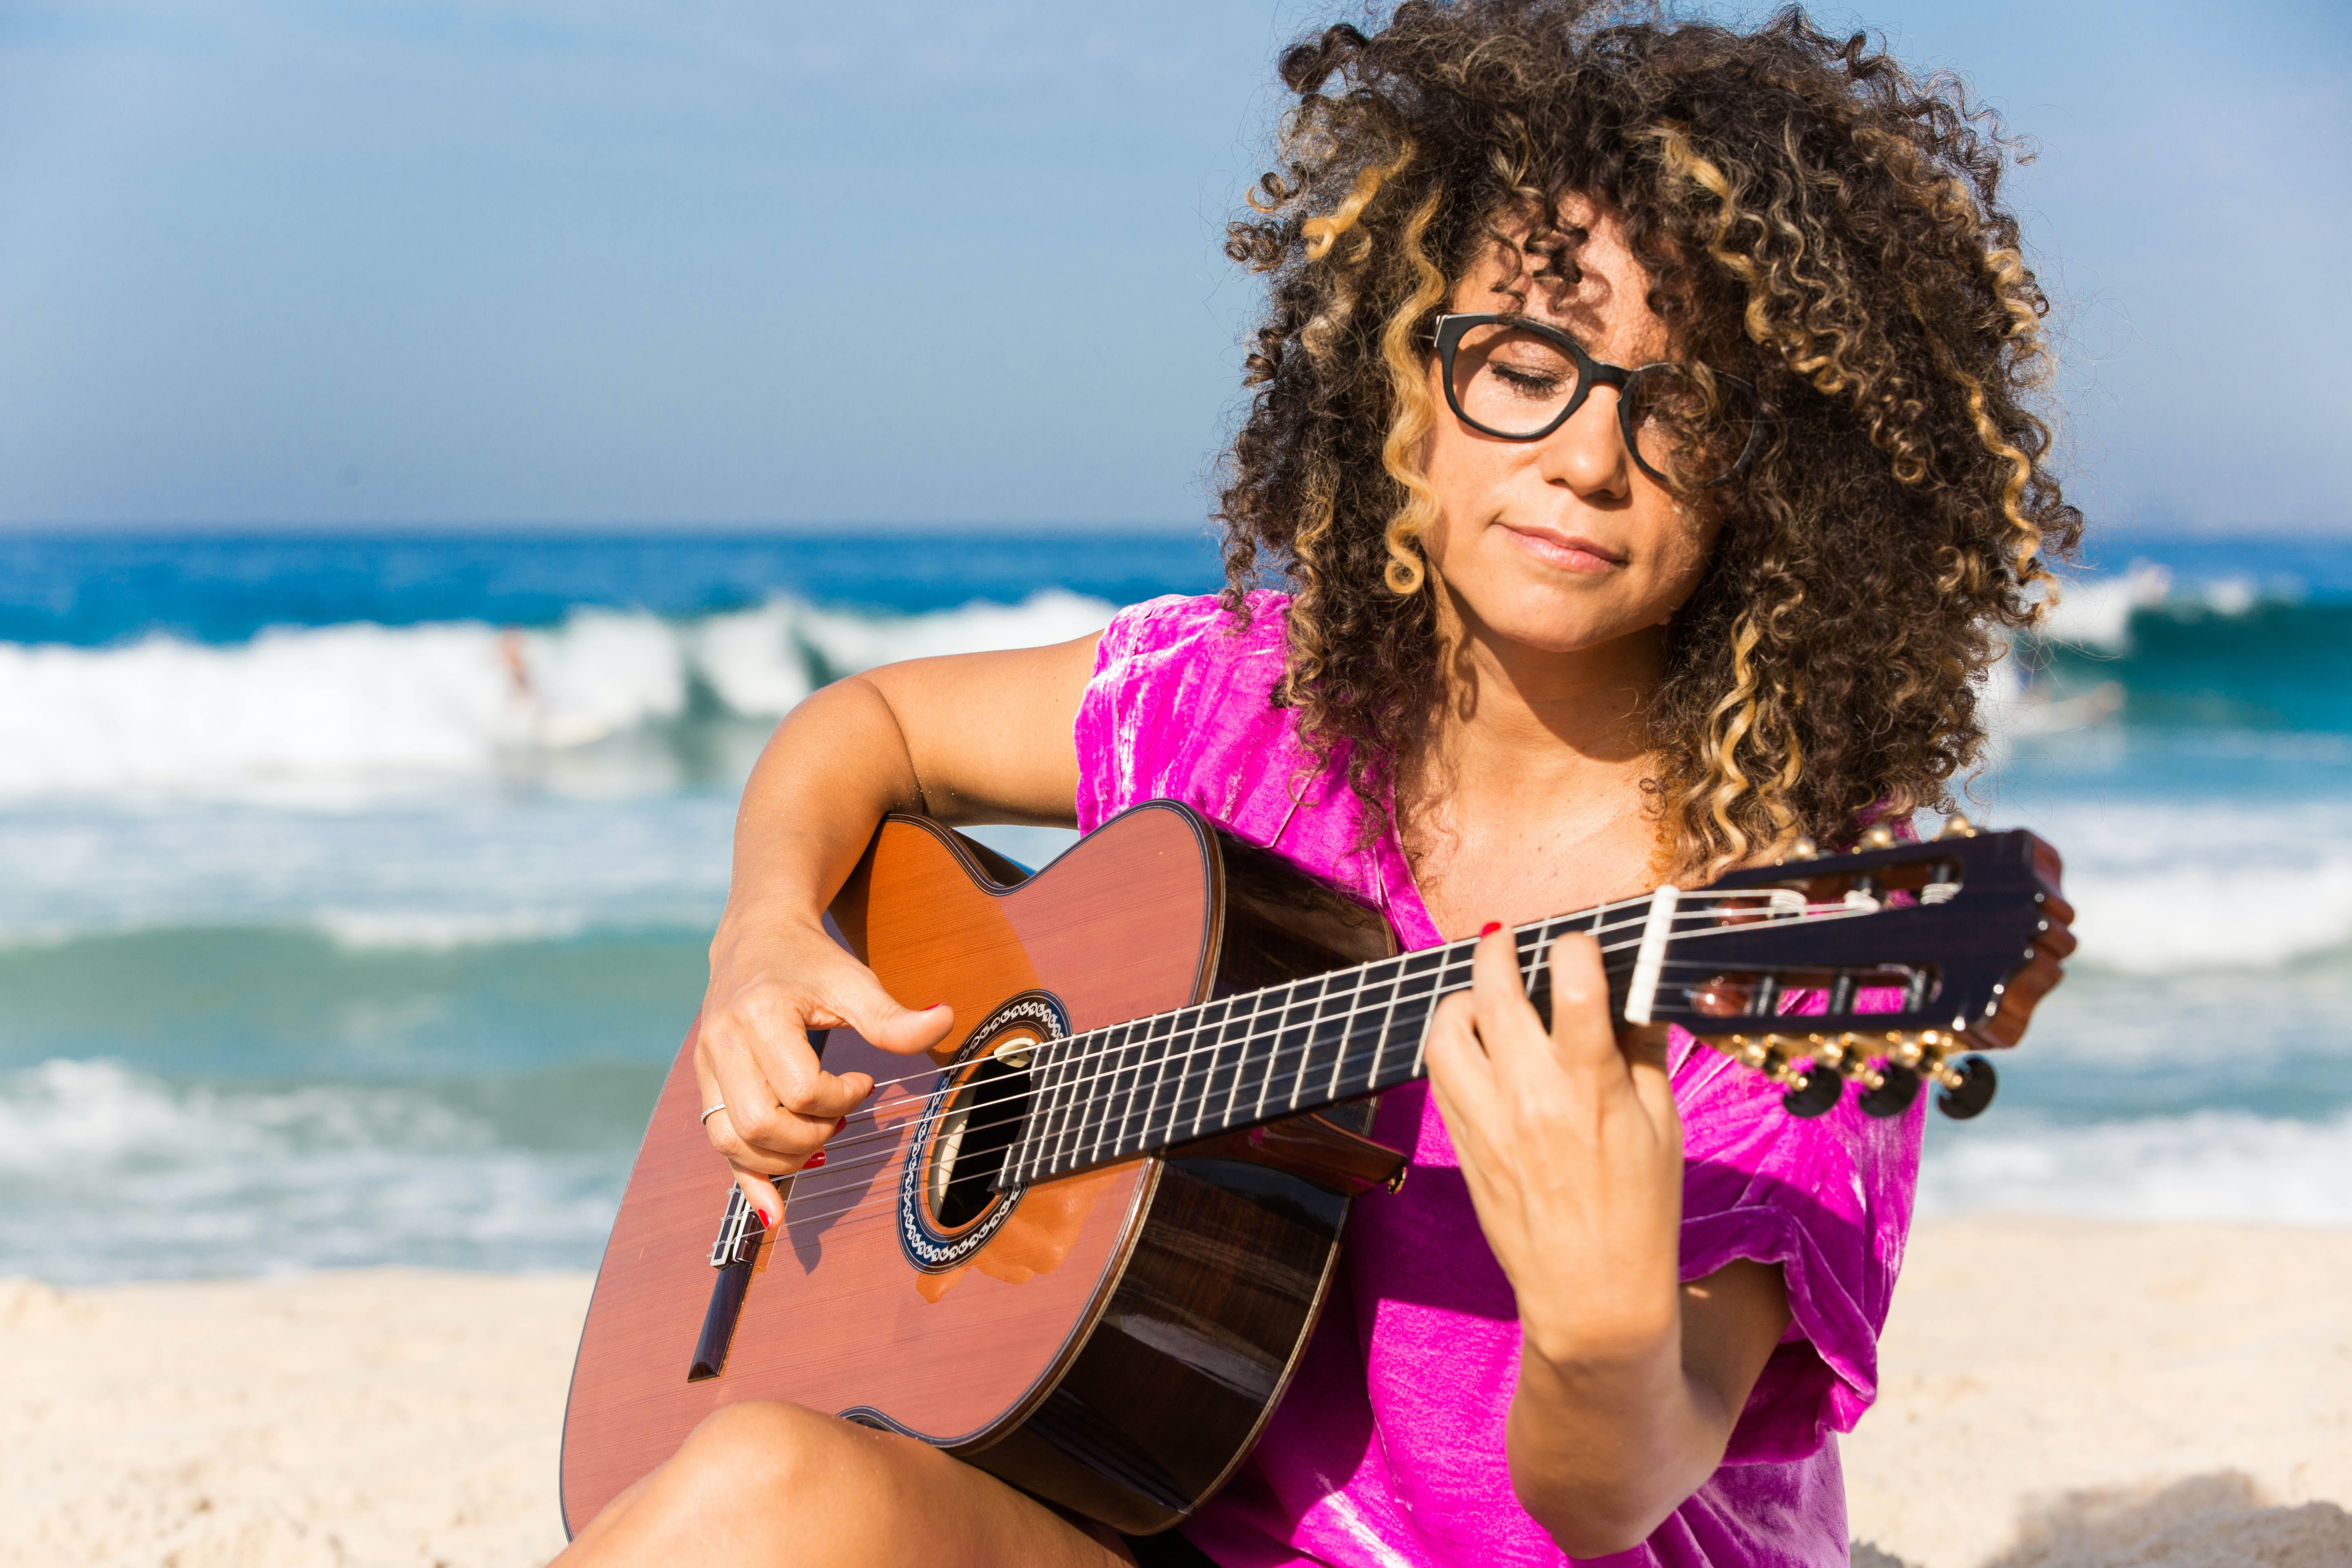 Woman Wearing Purple Shirt Playing Brown Classical Guitar While Sitting Near Shoreline With Water Splashing Background in Daytime